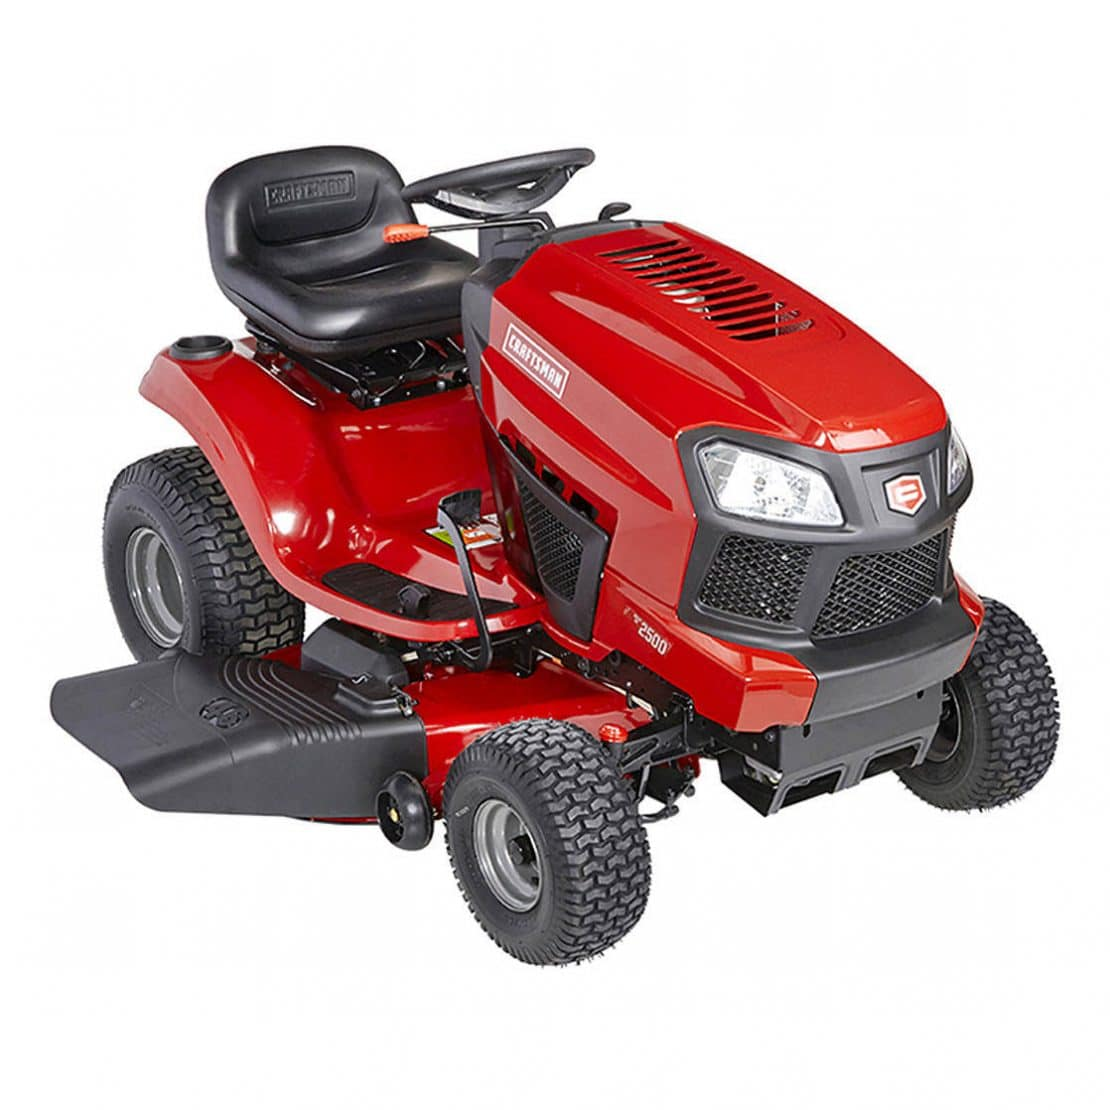 The Best Lawn Yard Amp Garden Tractor Buying Guide 2017